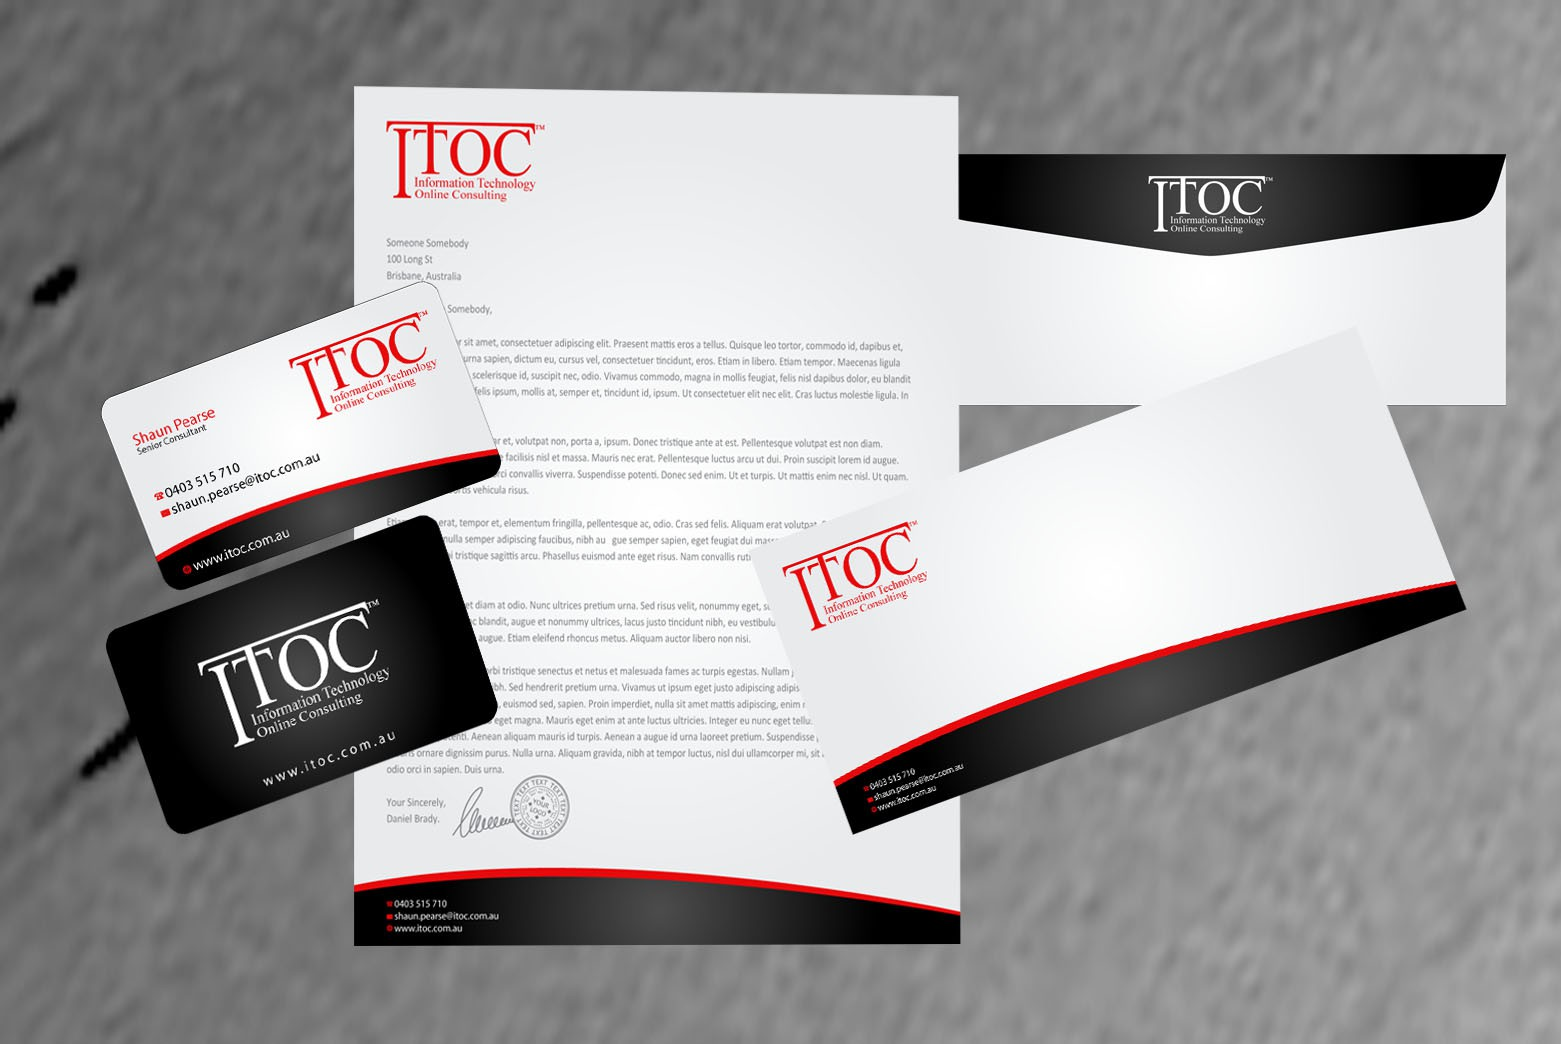 ITOC needs a new stationery